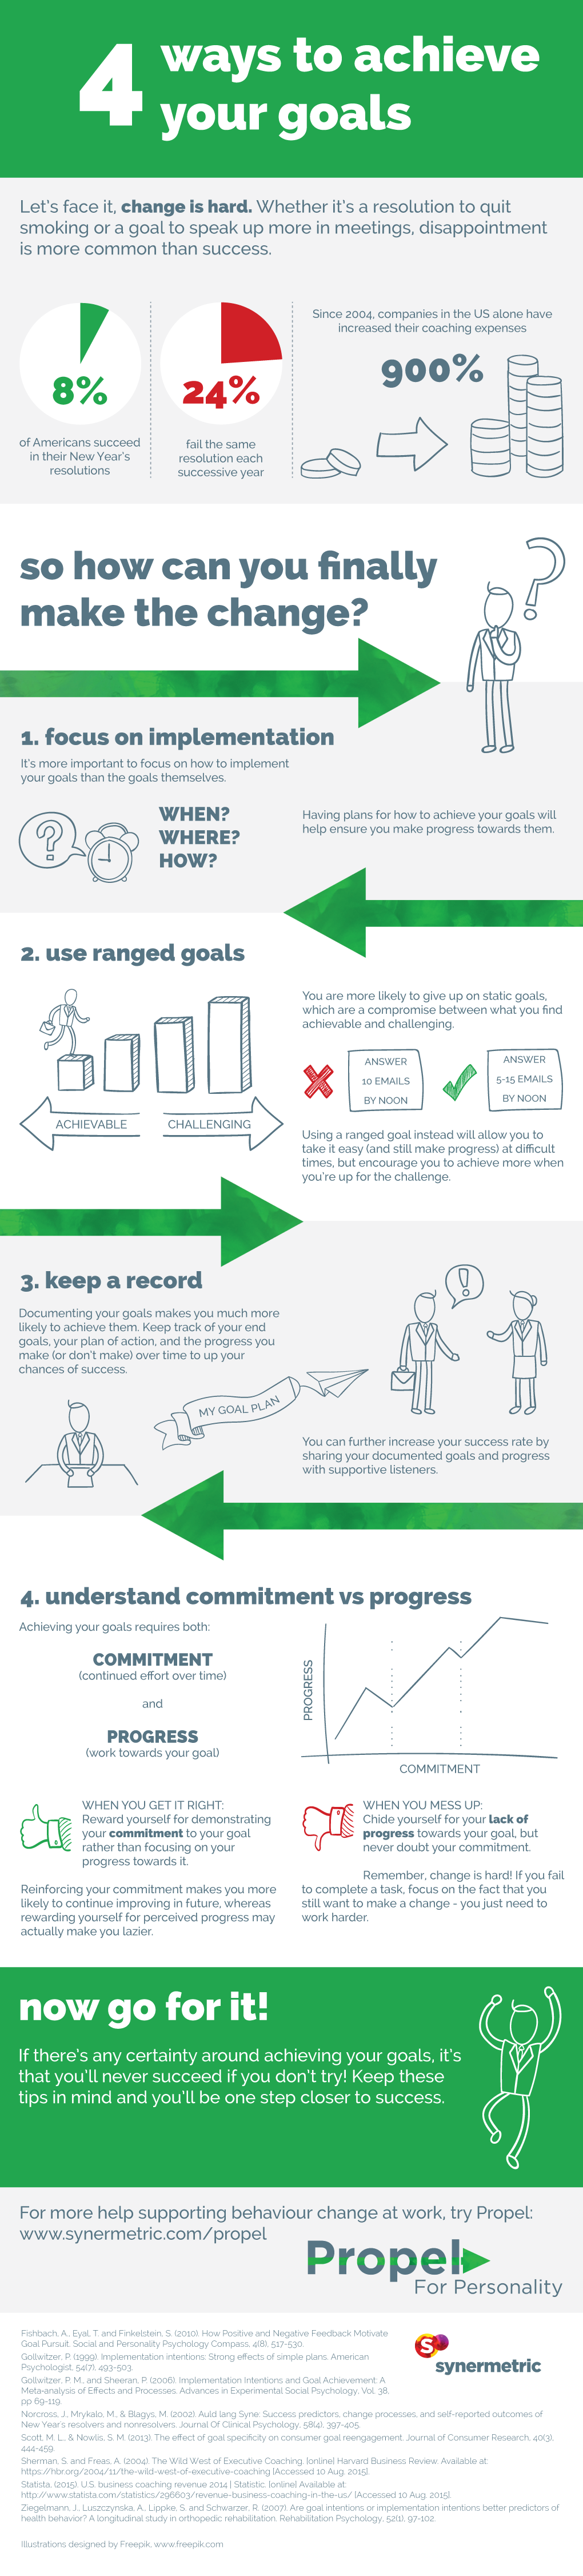 4 ways to achieve your goals infographic | Propel | Synermetric